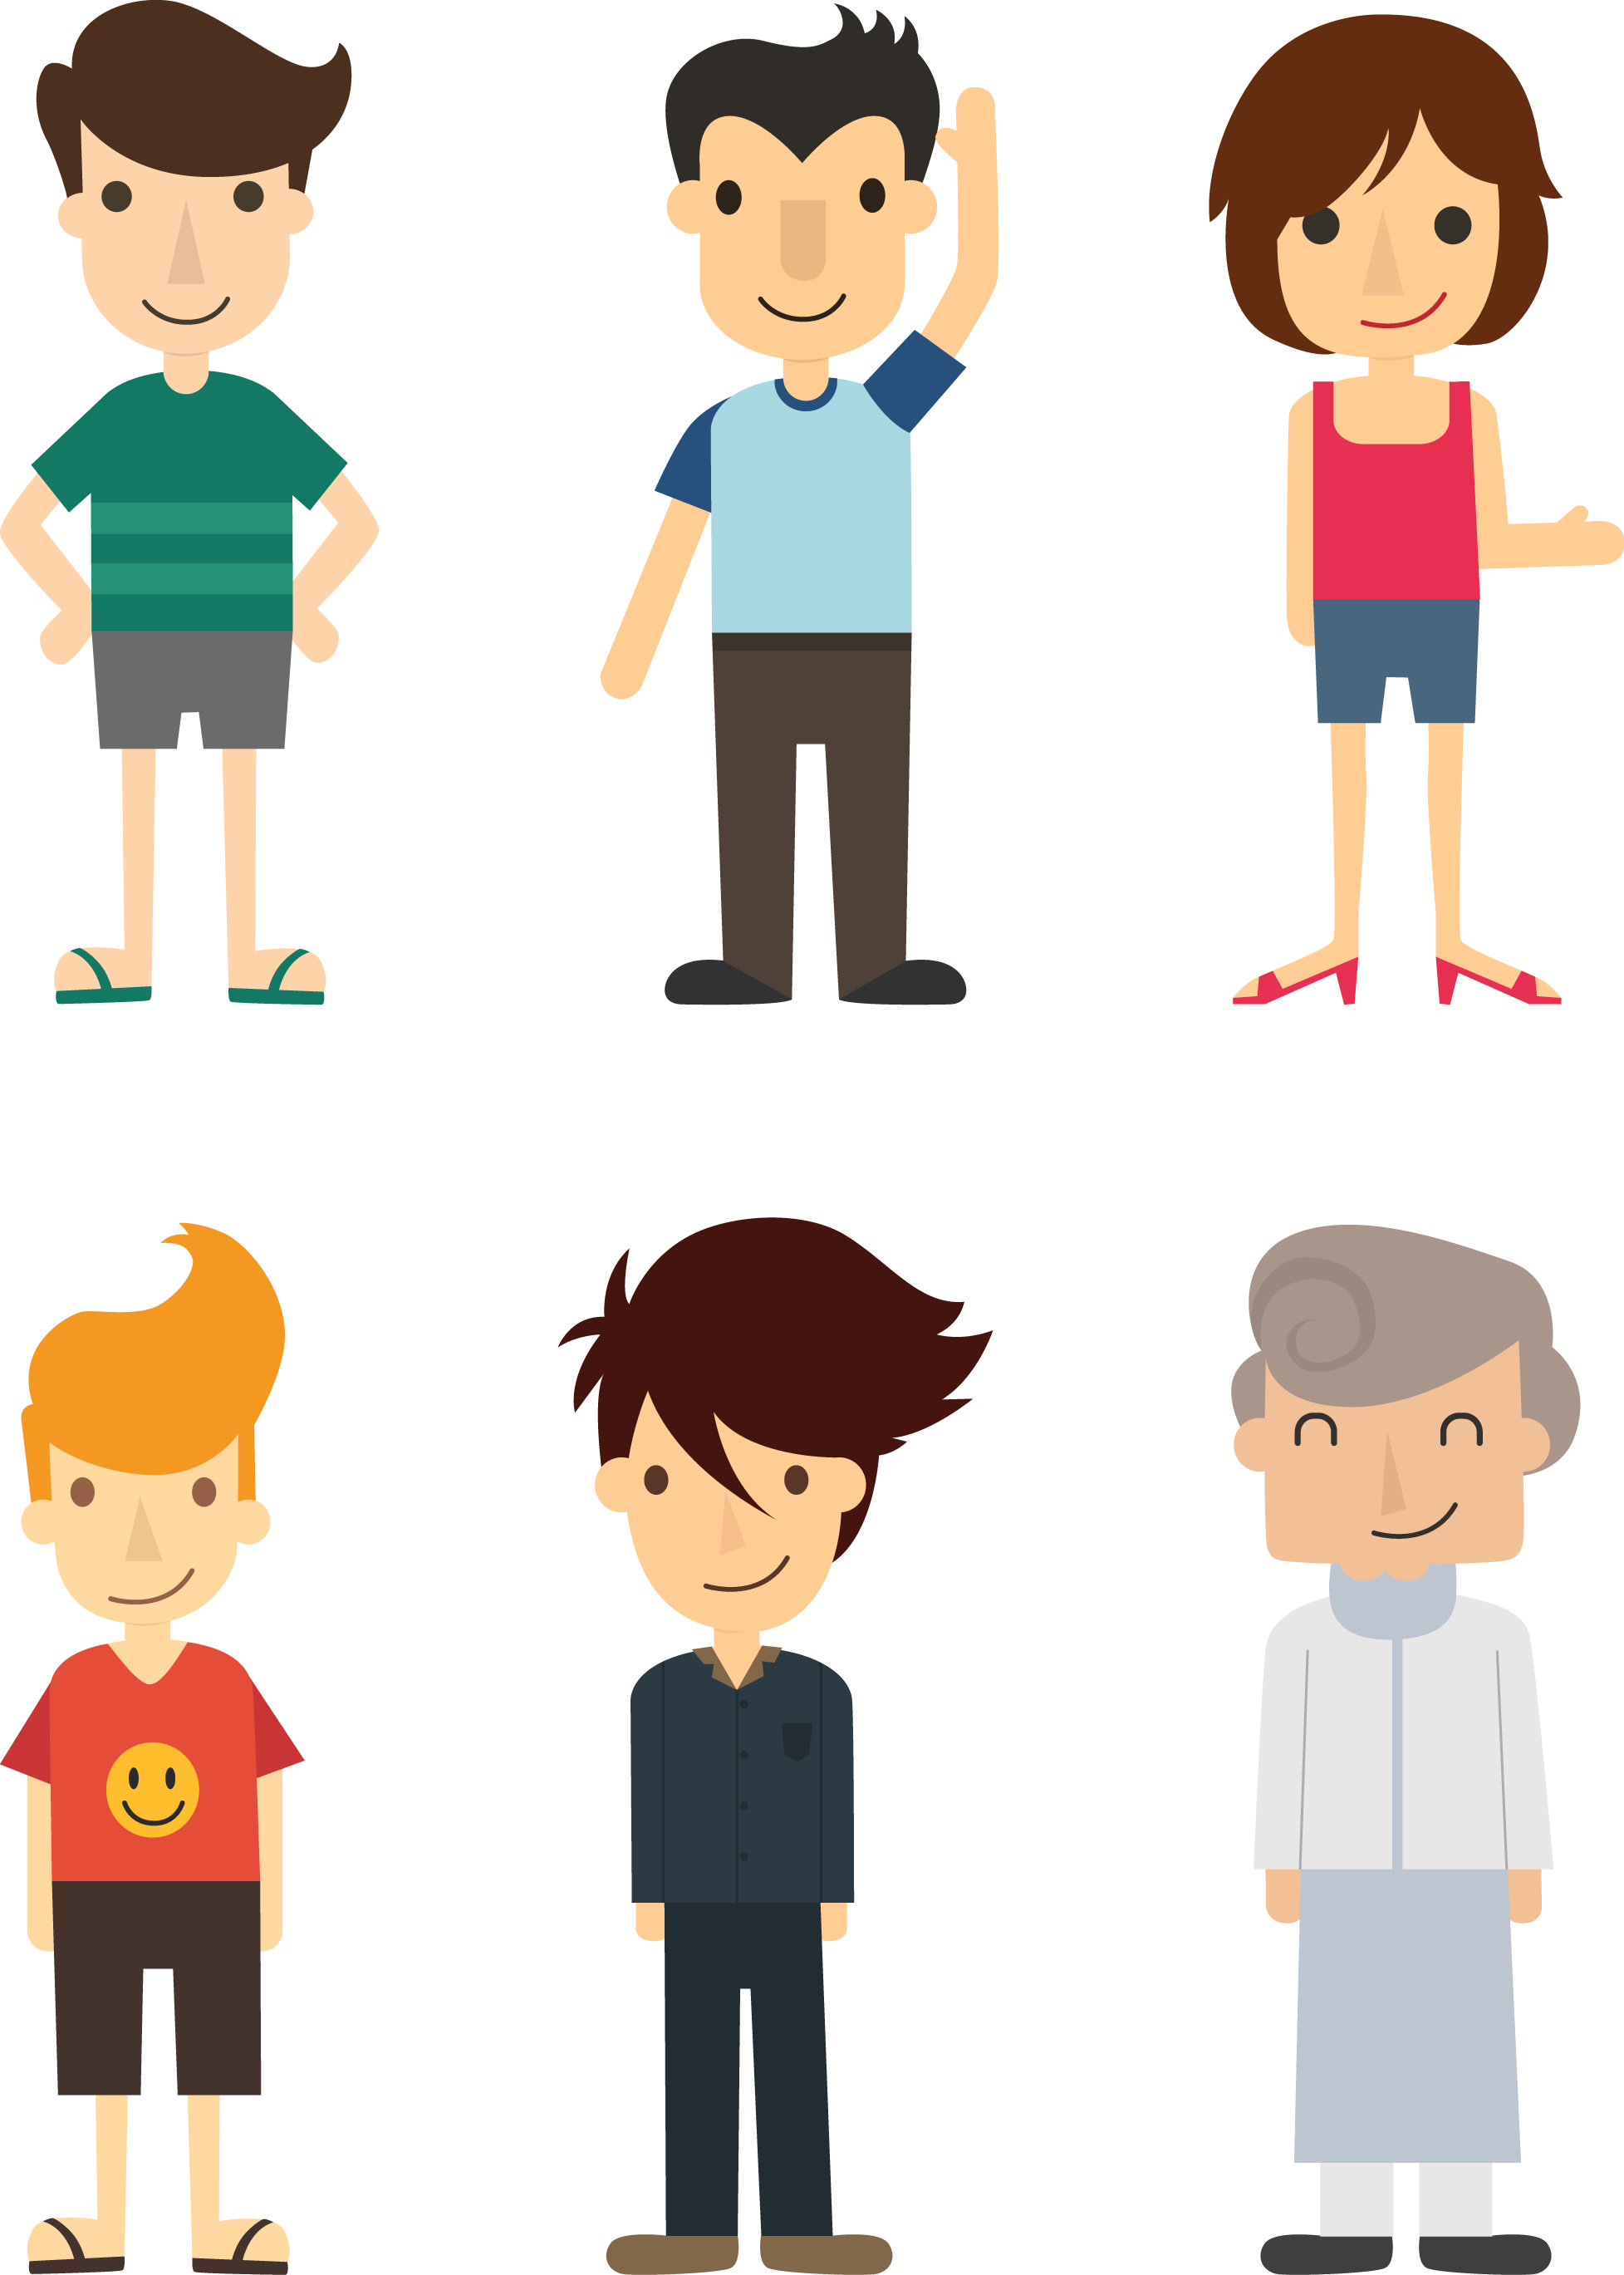 Communication vector flat design. Cartoon illustration people rar